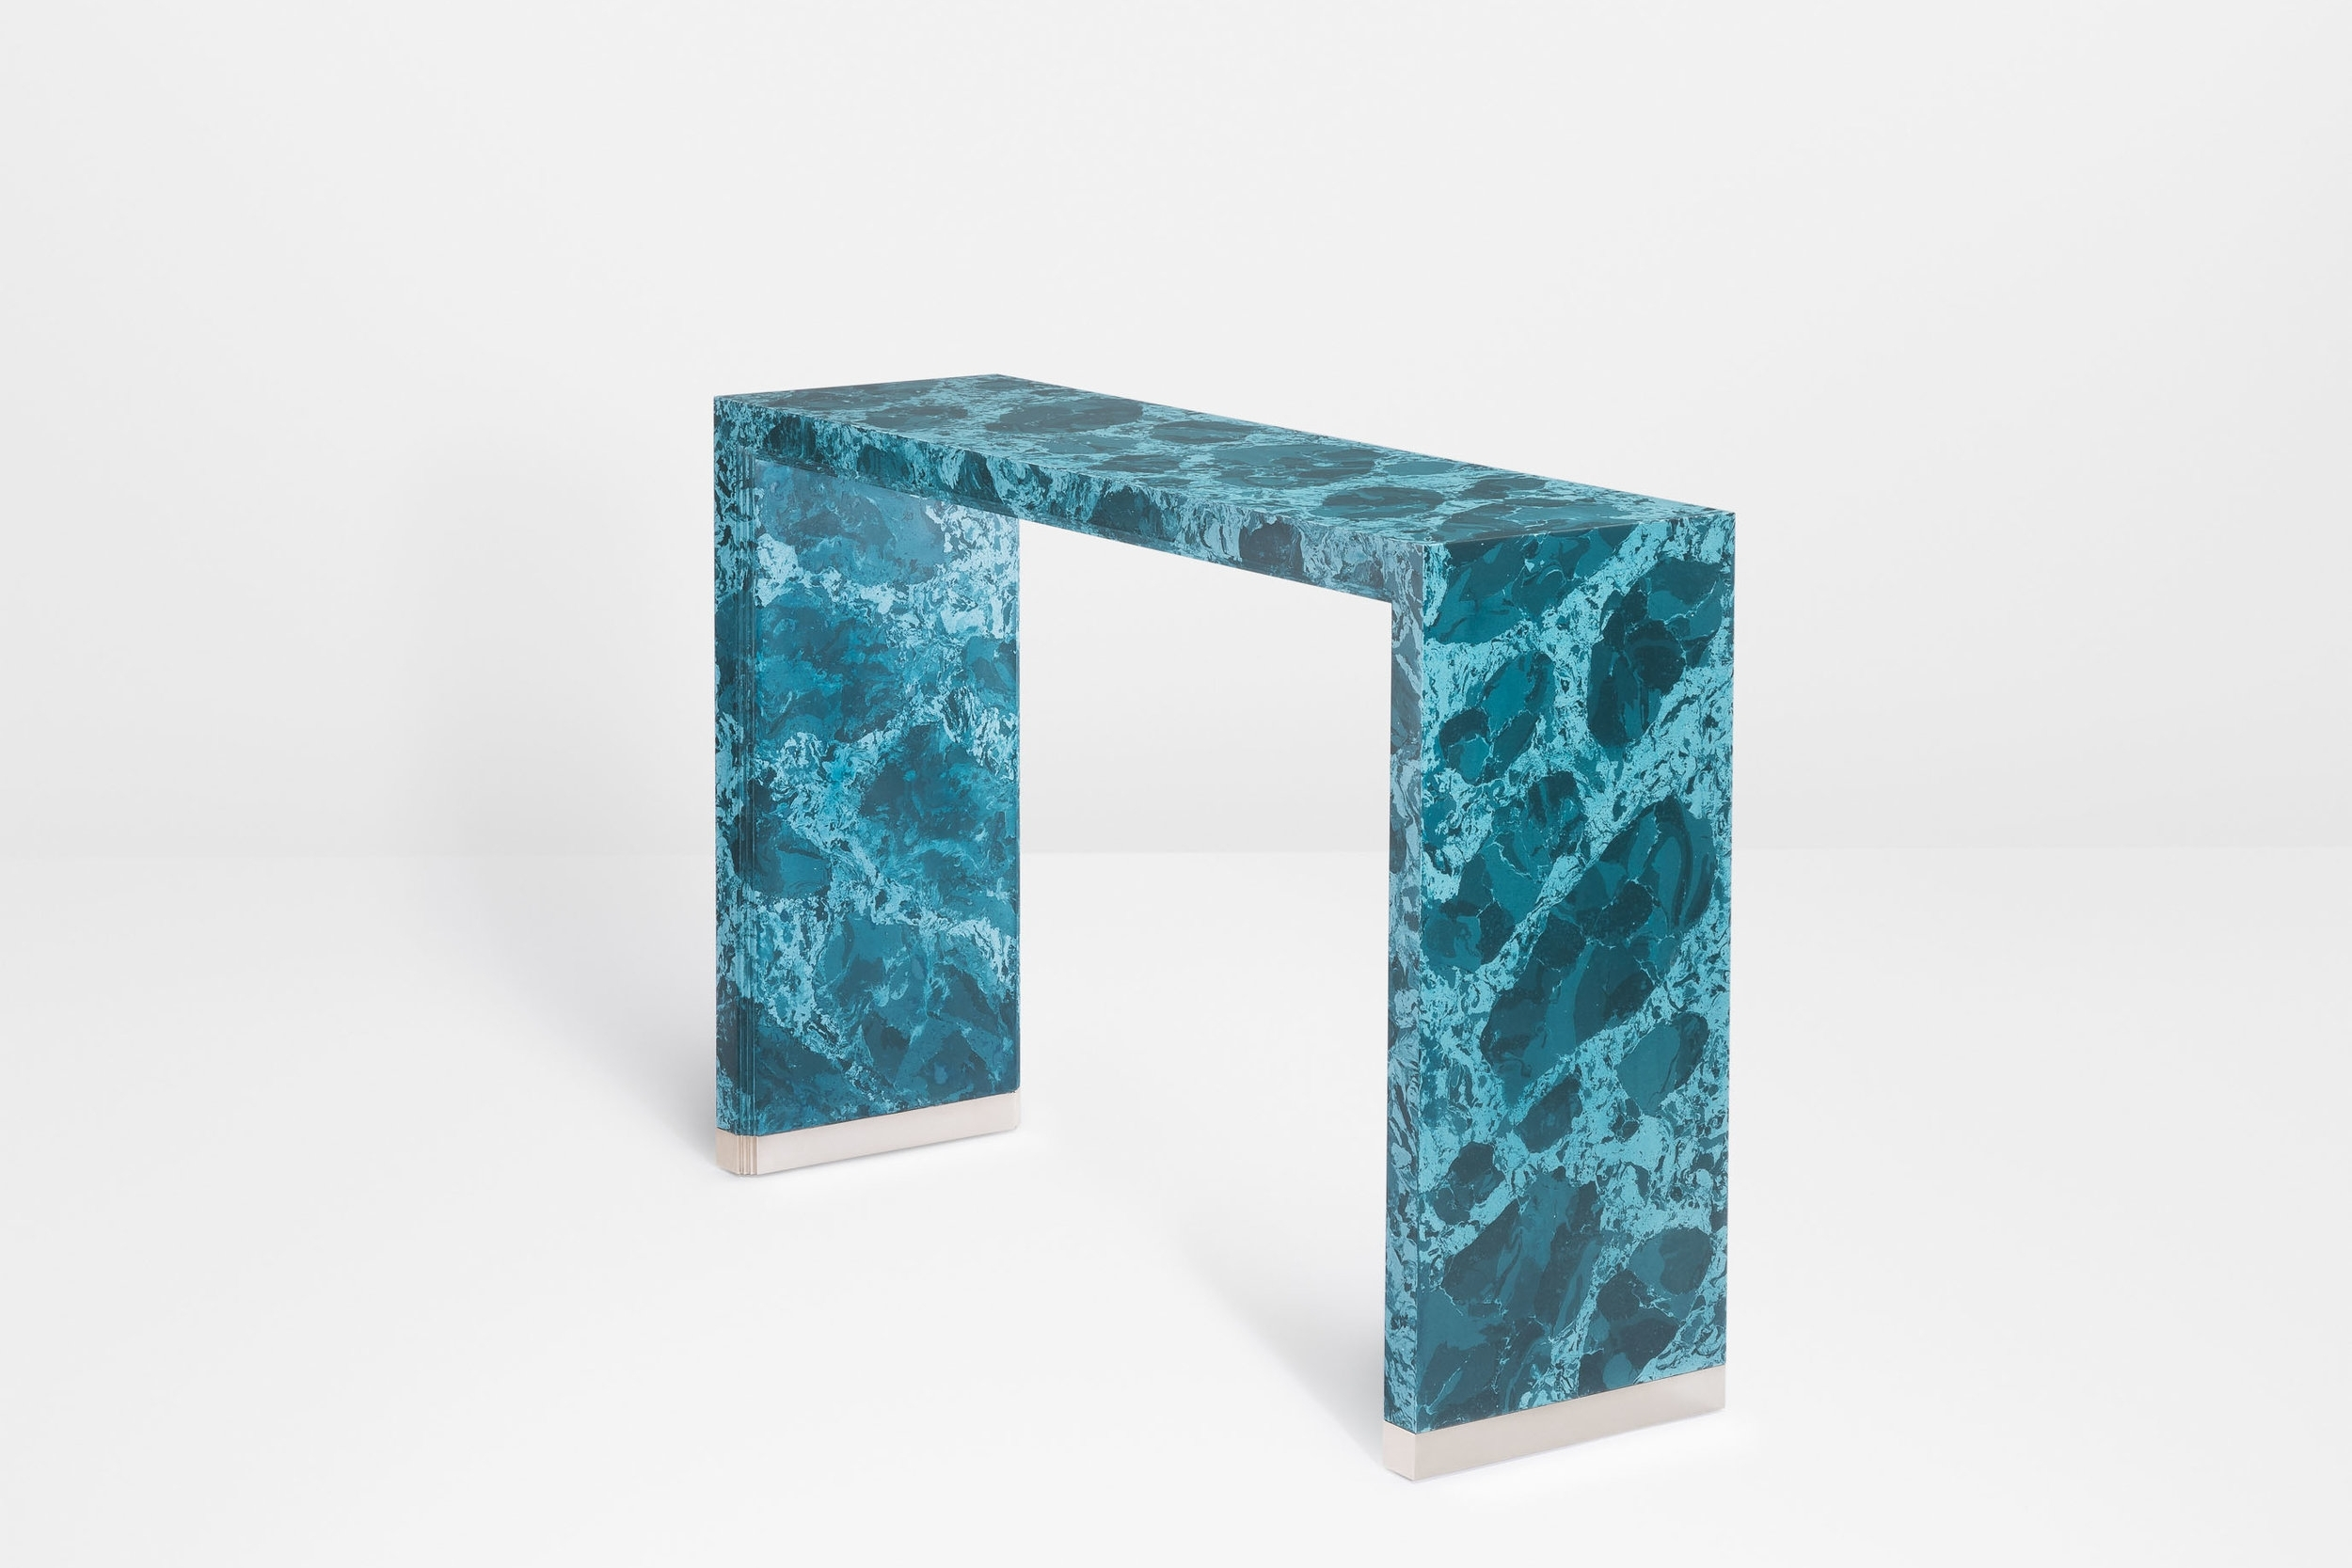 Blue scagliola console - angle 2-LOW-RES.jpg